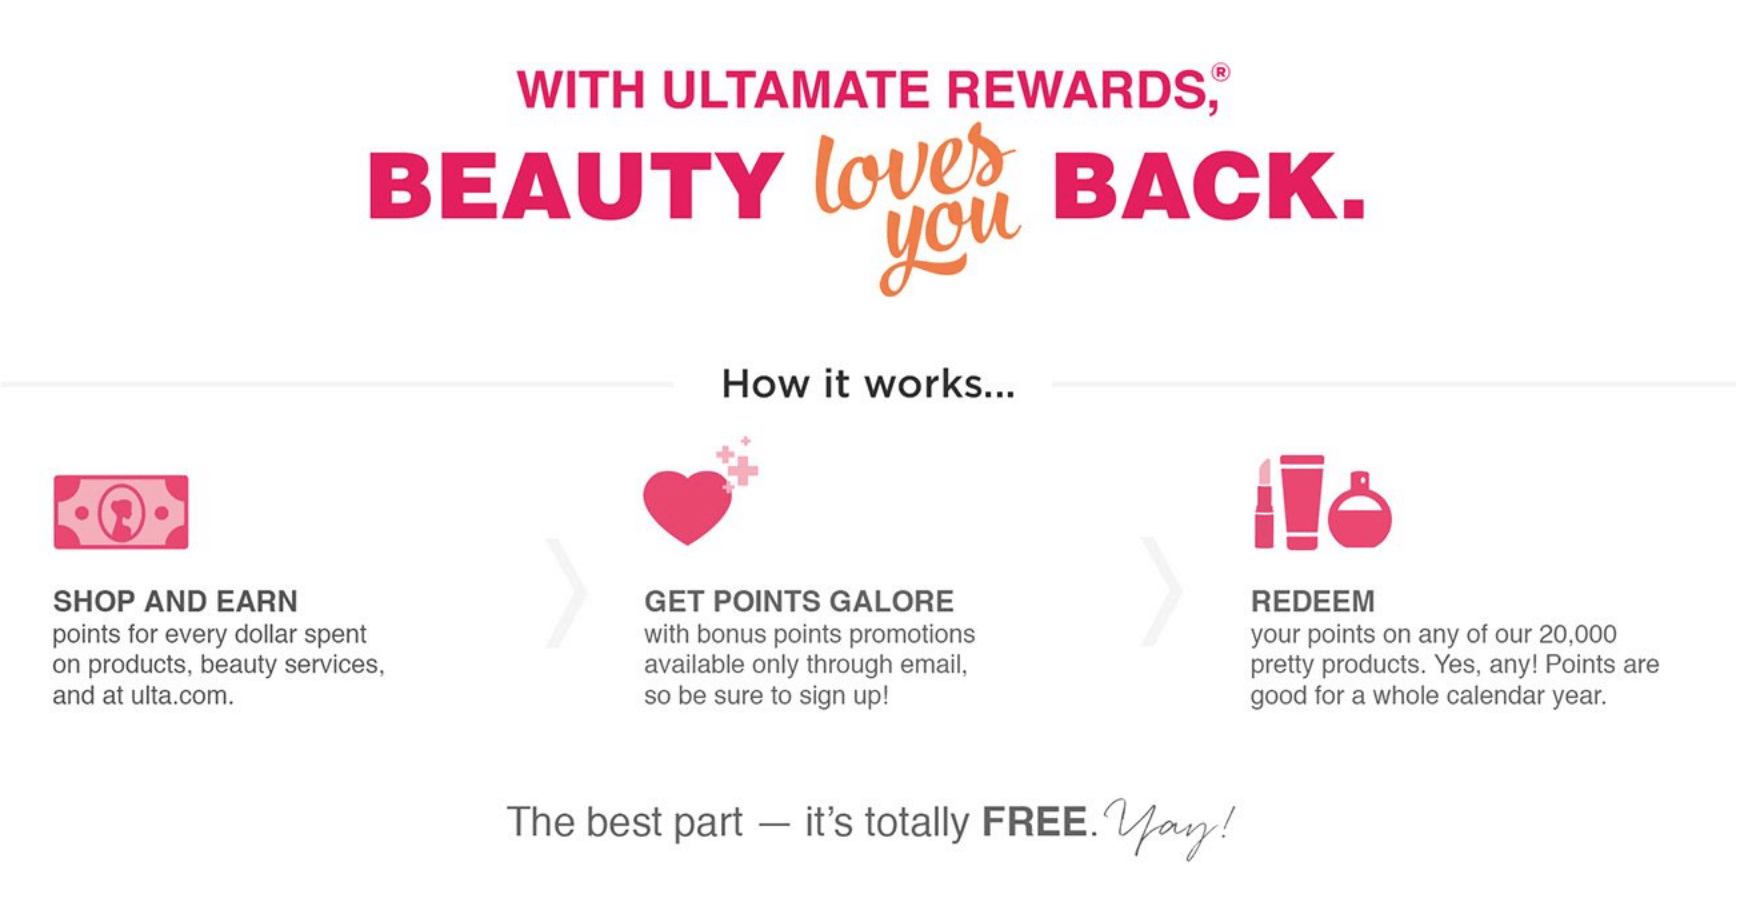 Ultamate Rewards program from Ulta